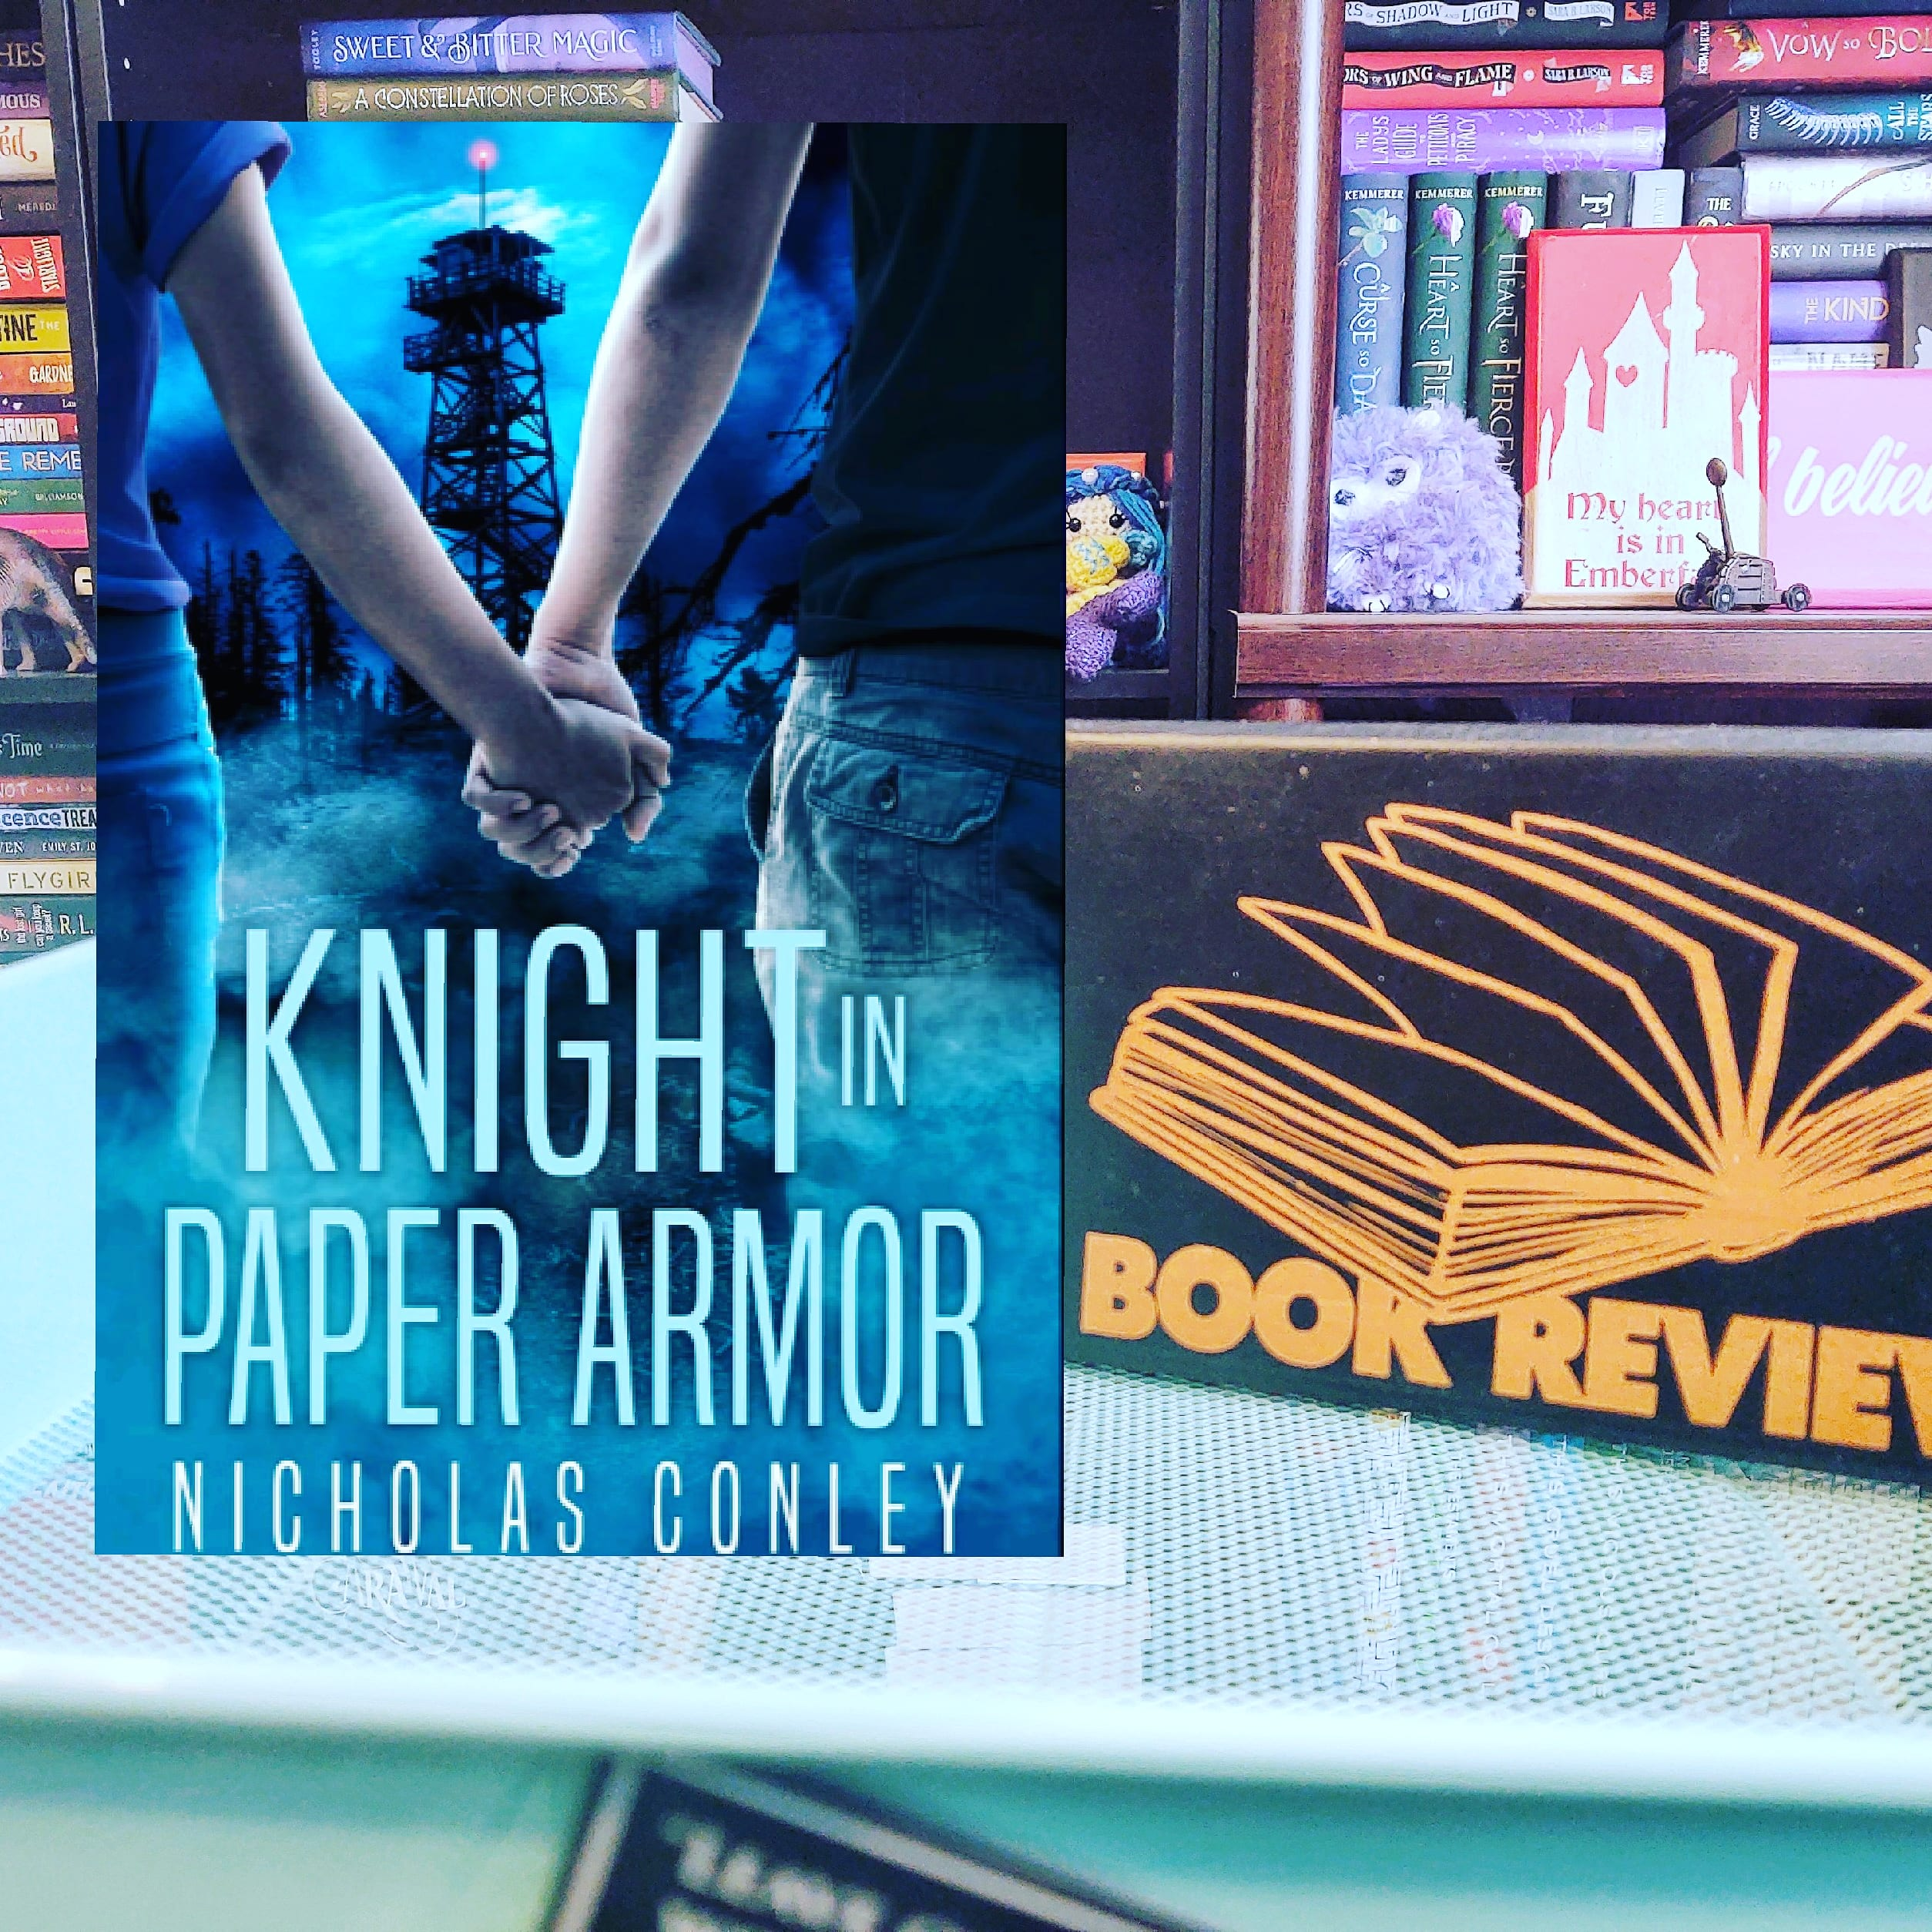 Knight in Paper Armor by Nicholas Conley